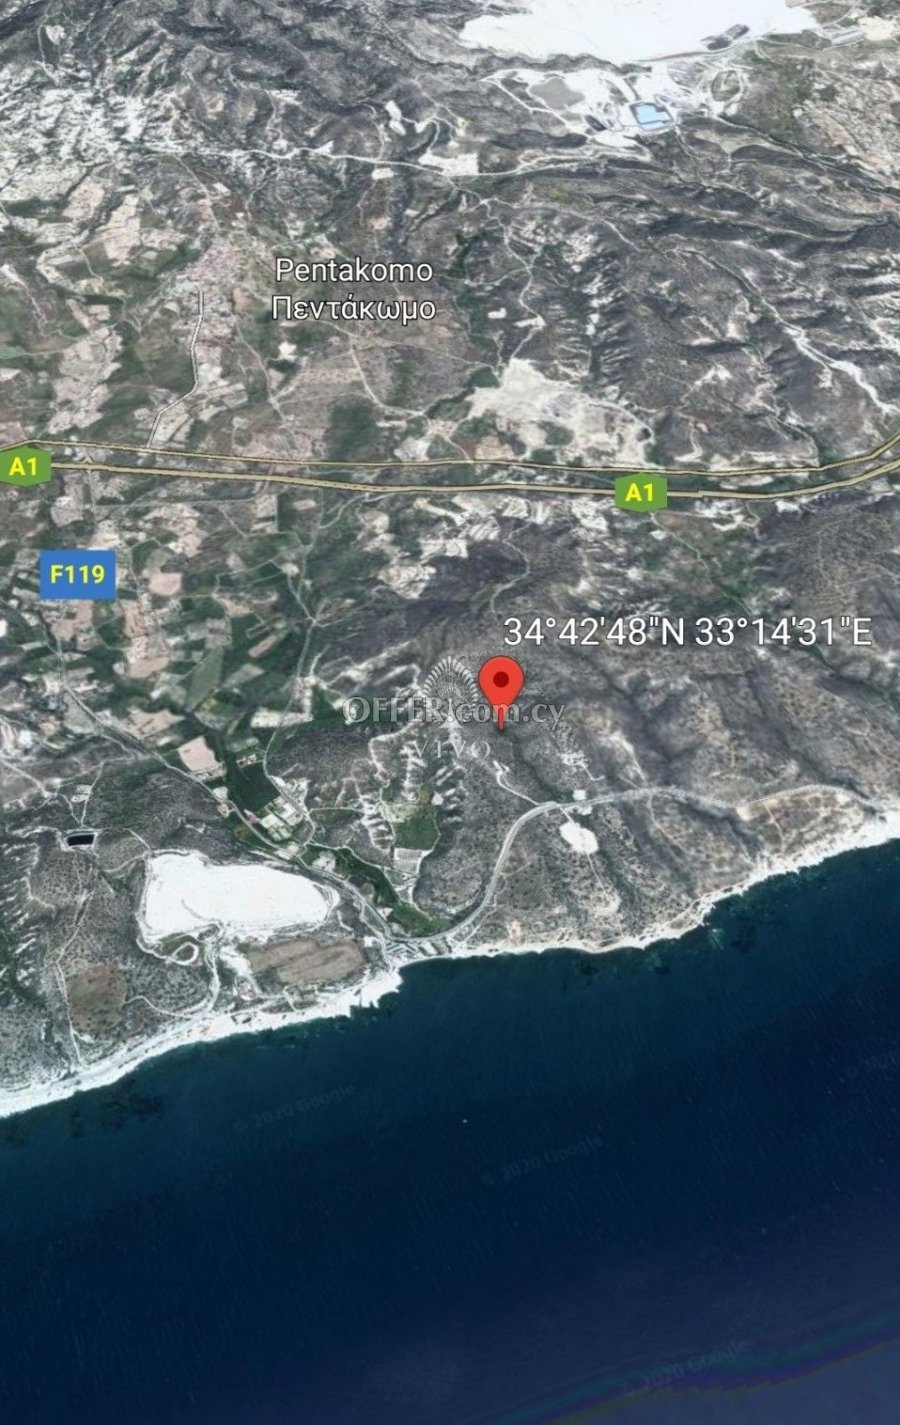 RARE LAND OF 64215m2 FOR SALE IN PENTAKOMO - 1